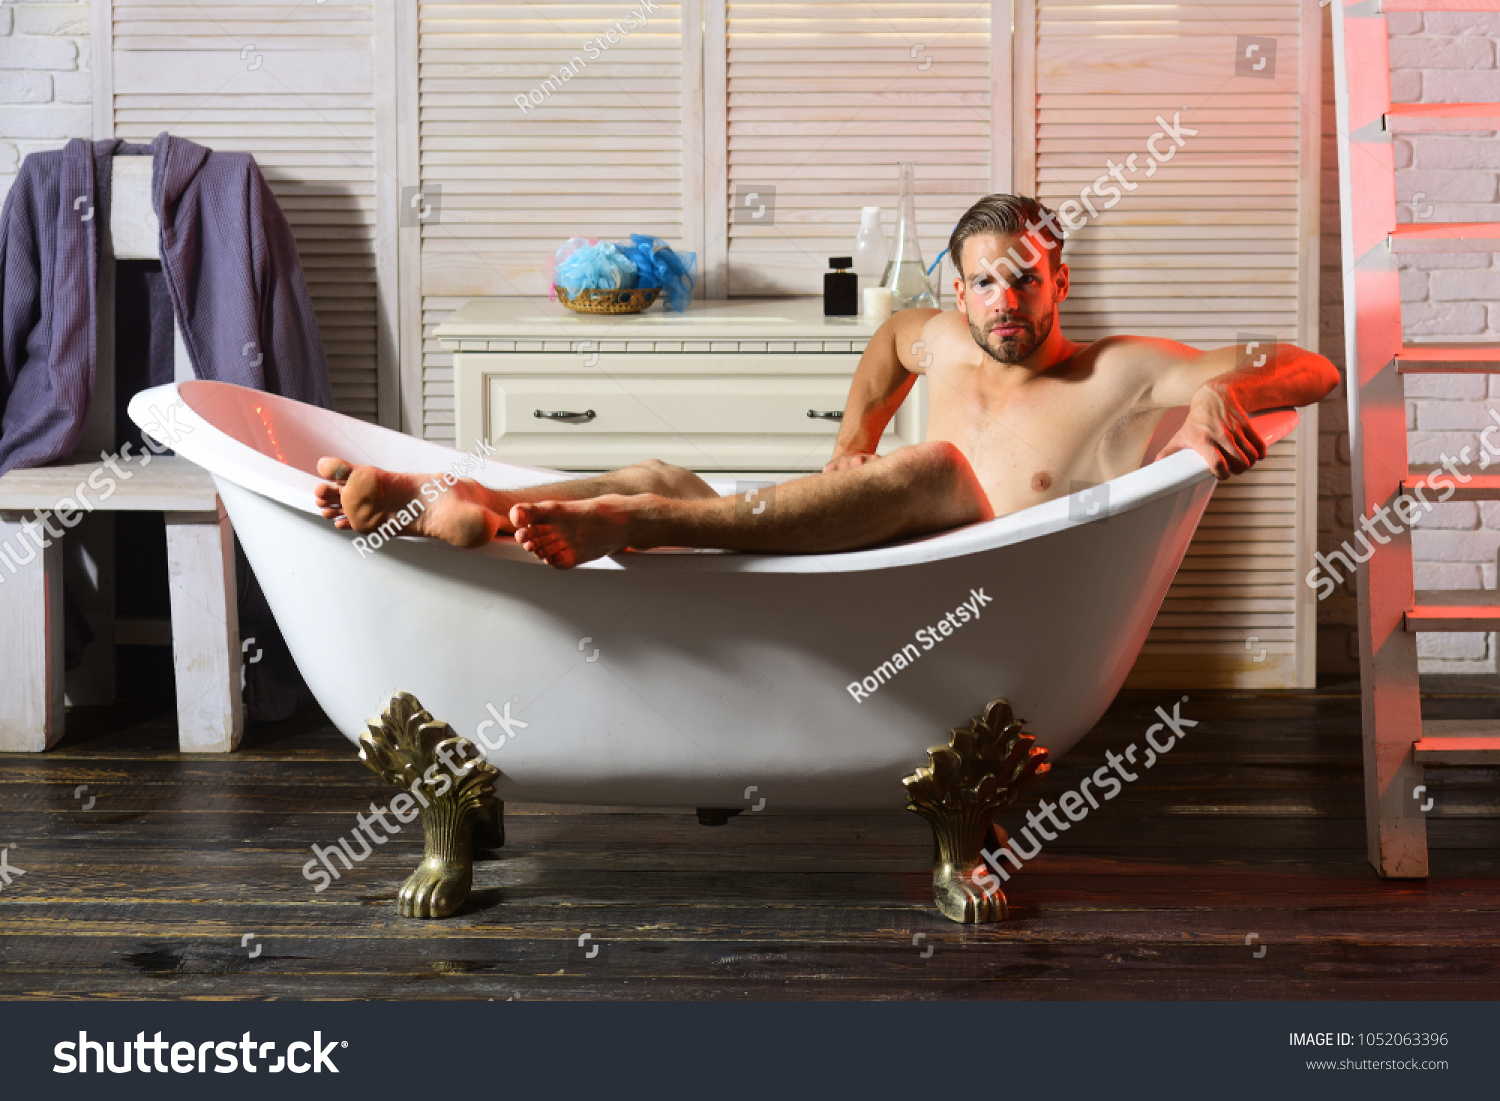 Guys naked in a bathtub having sex, virgin amatuers